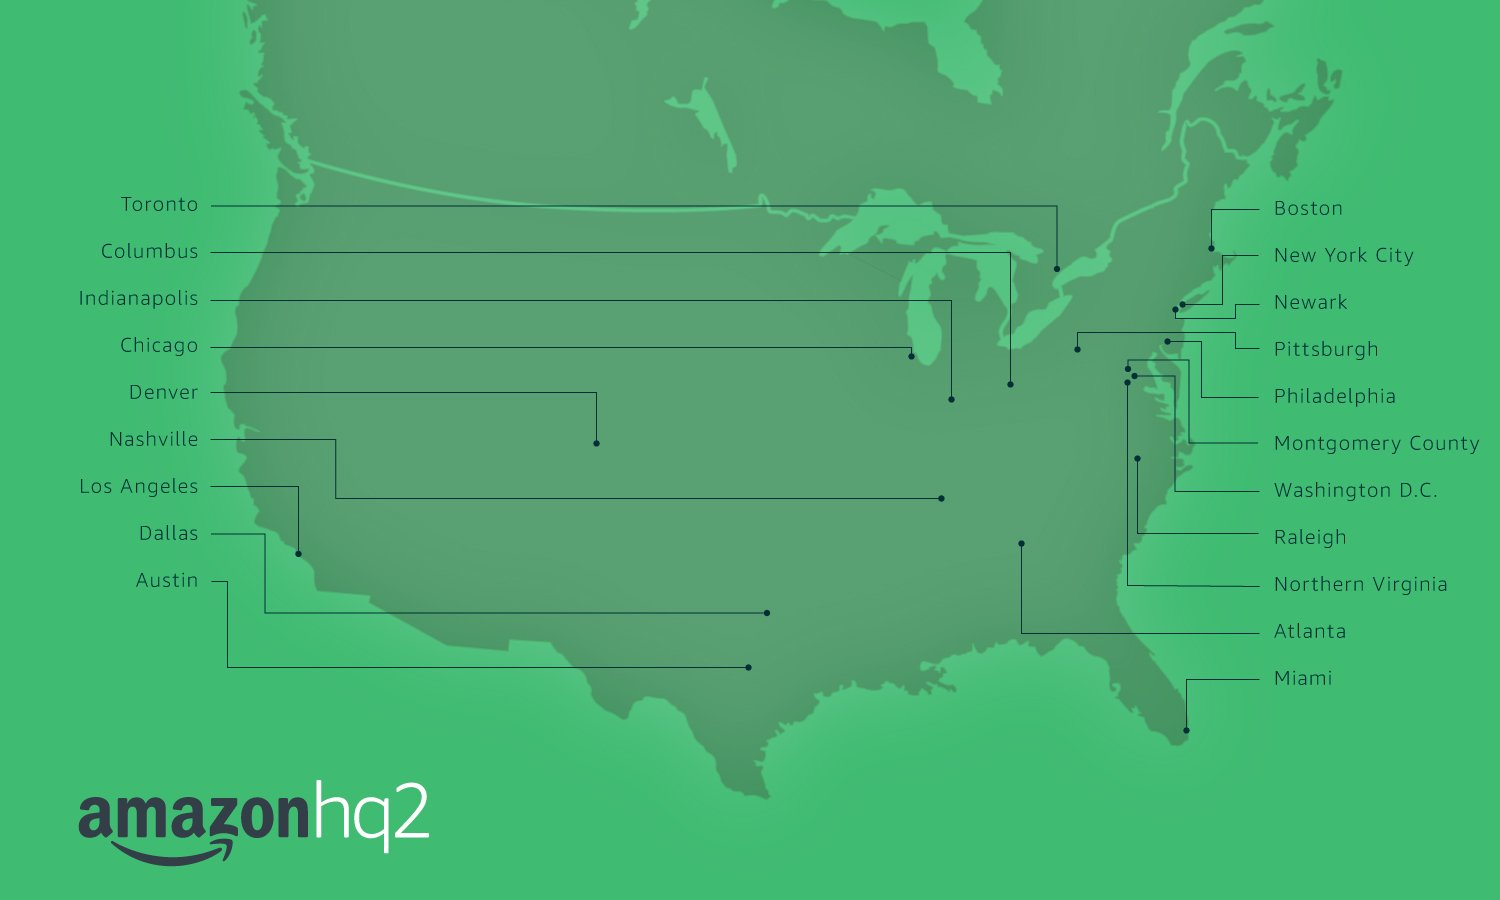 Amazon HQ2: A Macrocosm For Buyers And Sellers